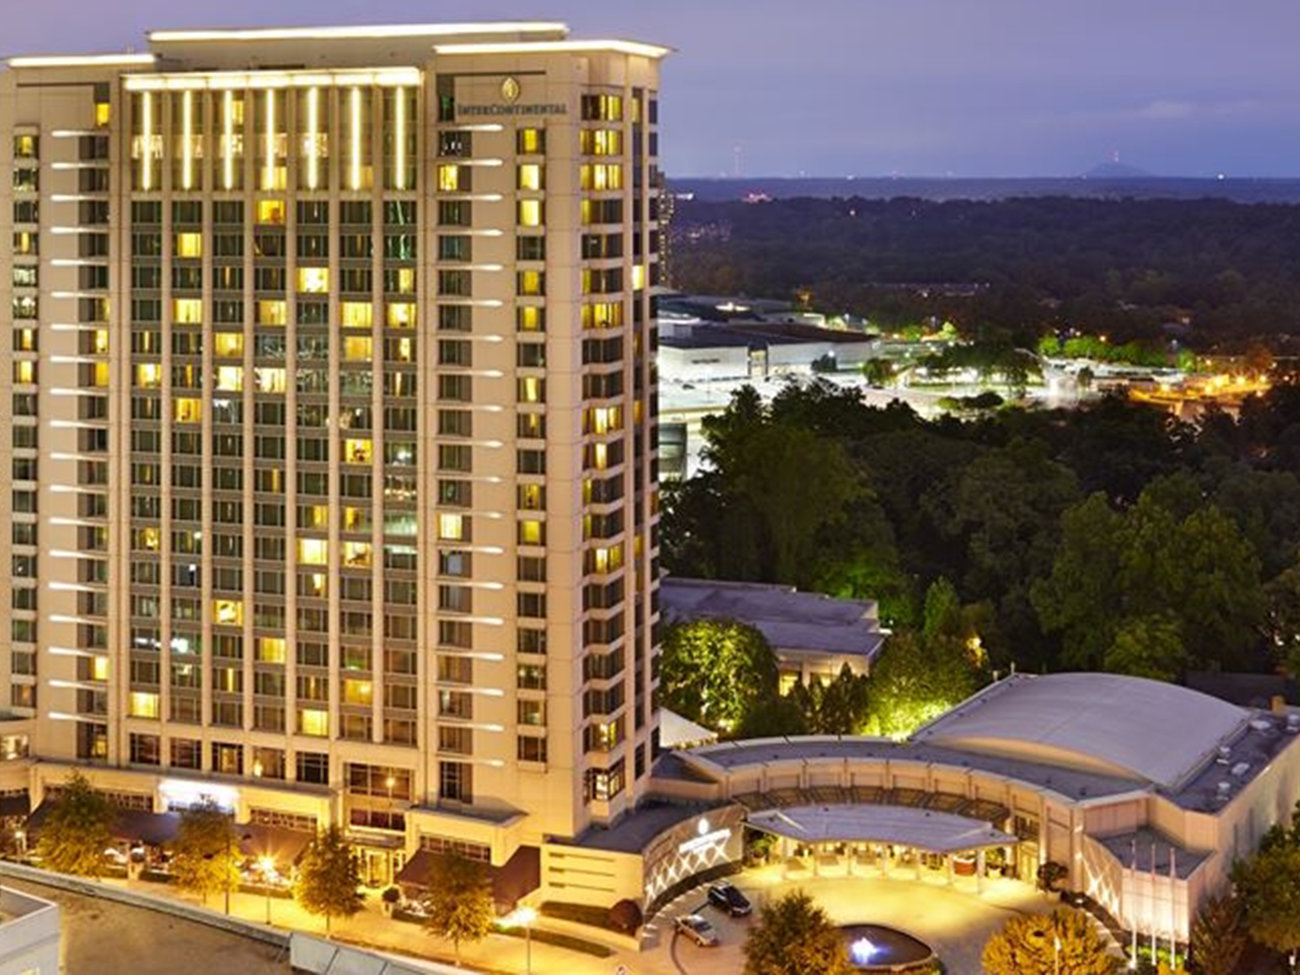 Intercontinental Hotel Buckhead Atlanta